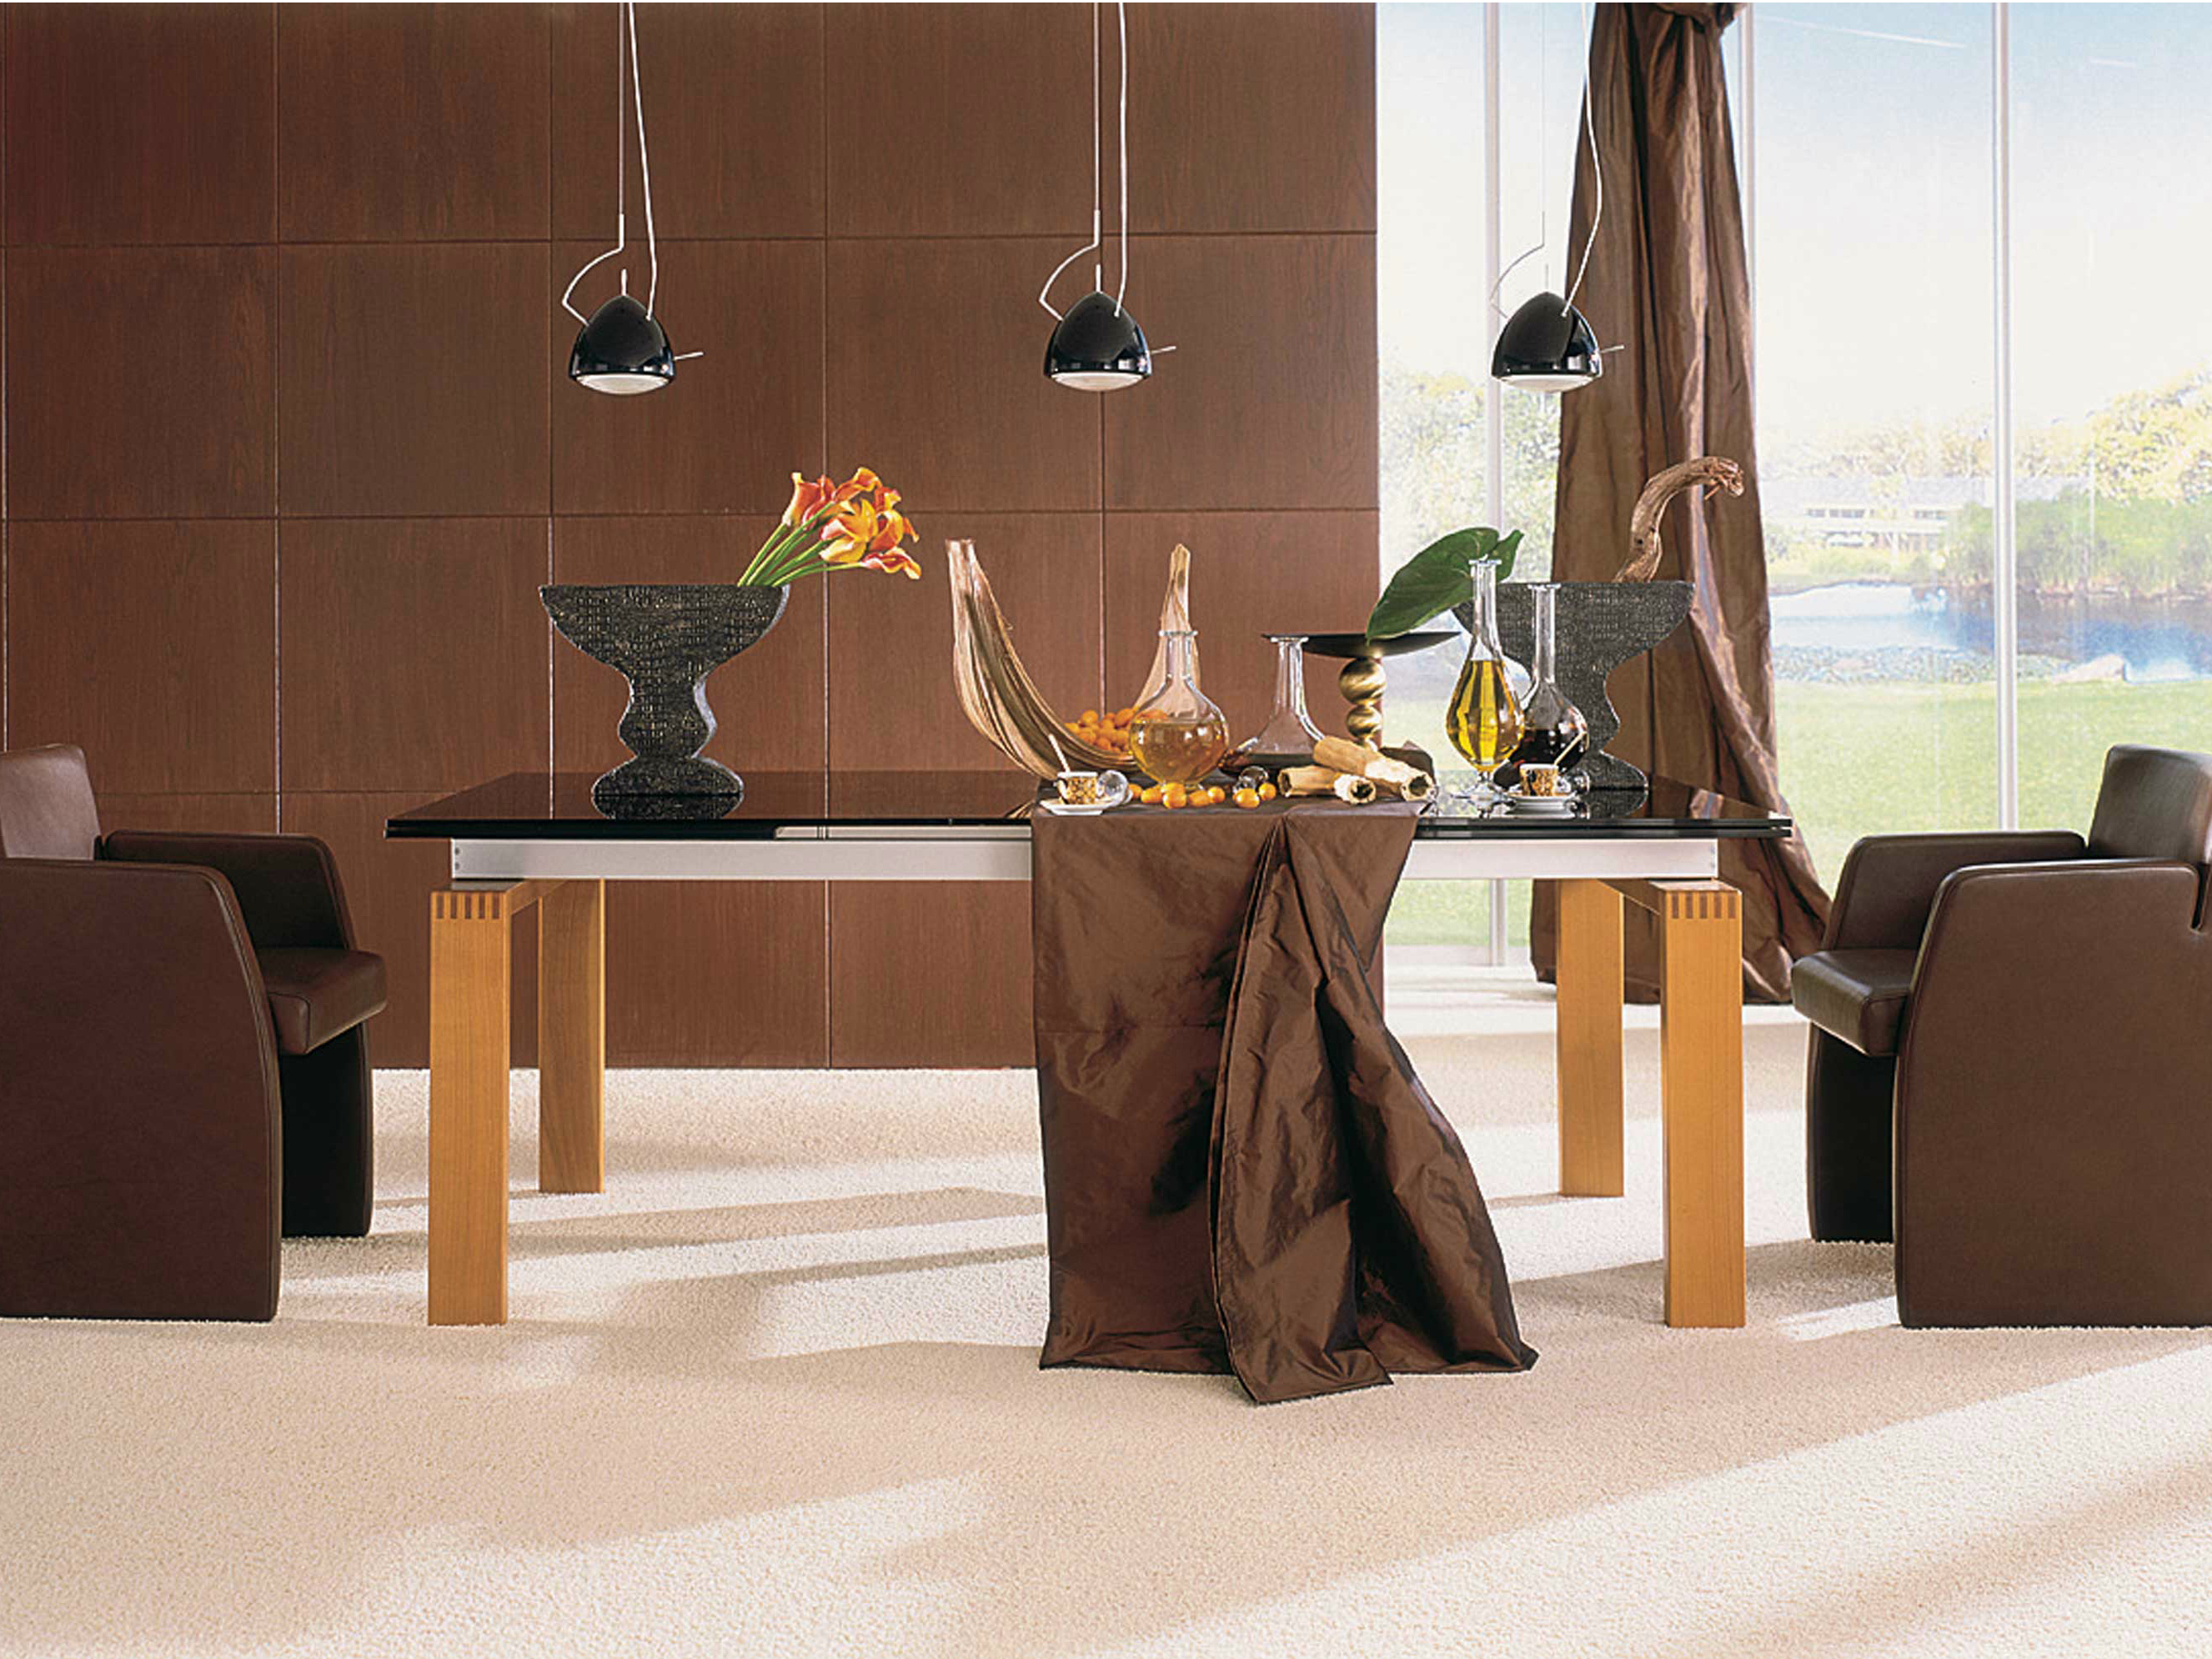 et 600 stained glass table by h lsta werke h ls. Black Bedroom Furniture Sets. Home Design Ideas